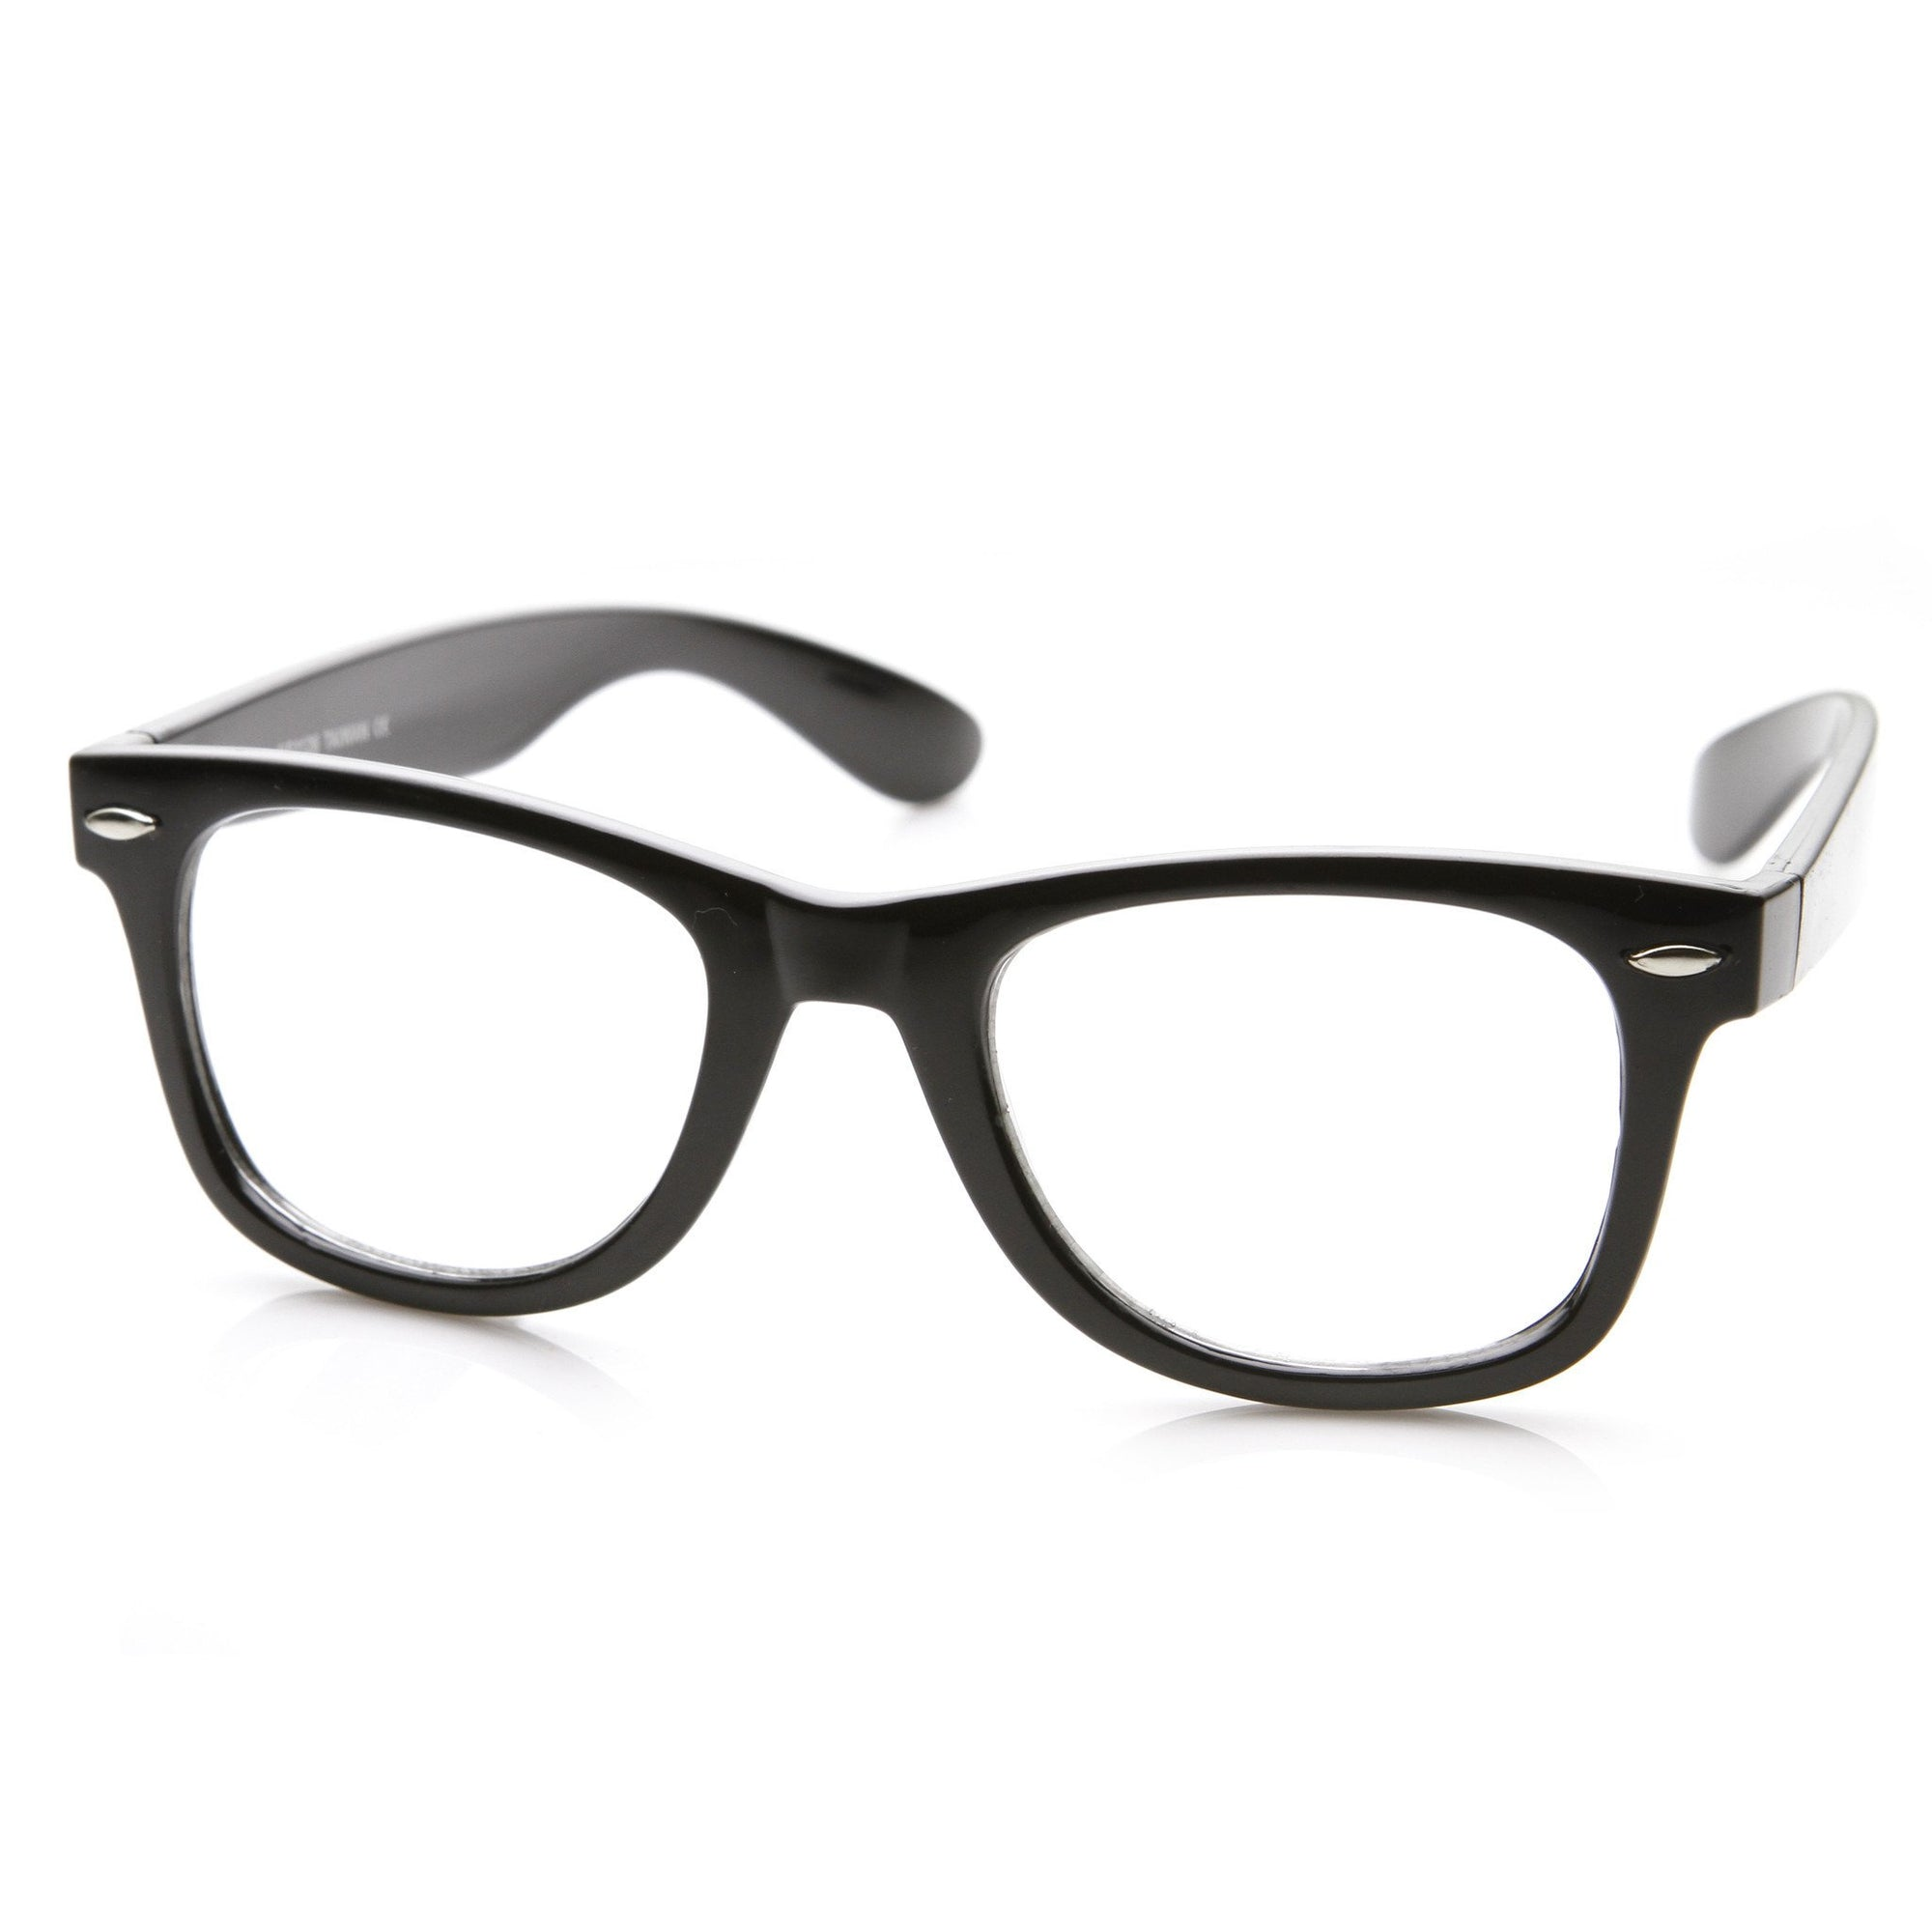 1675cdc96a296 Retro Classic Horned Rim Frame RX Optical Clear Lens Glasses 8708 · Black